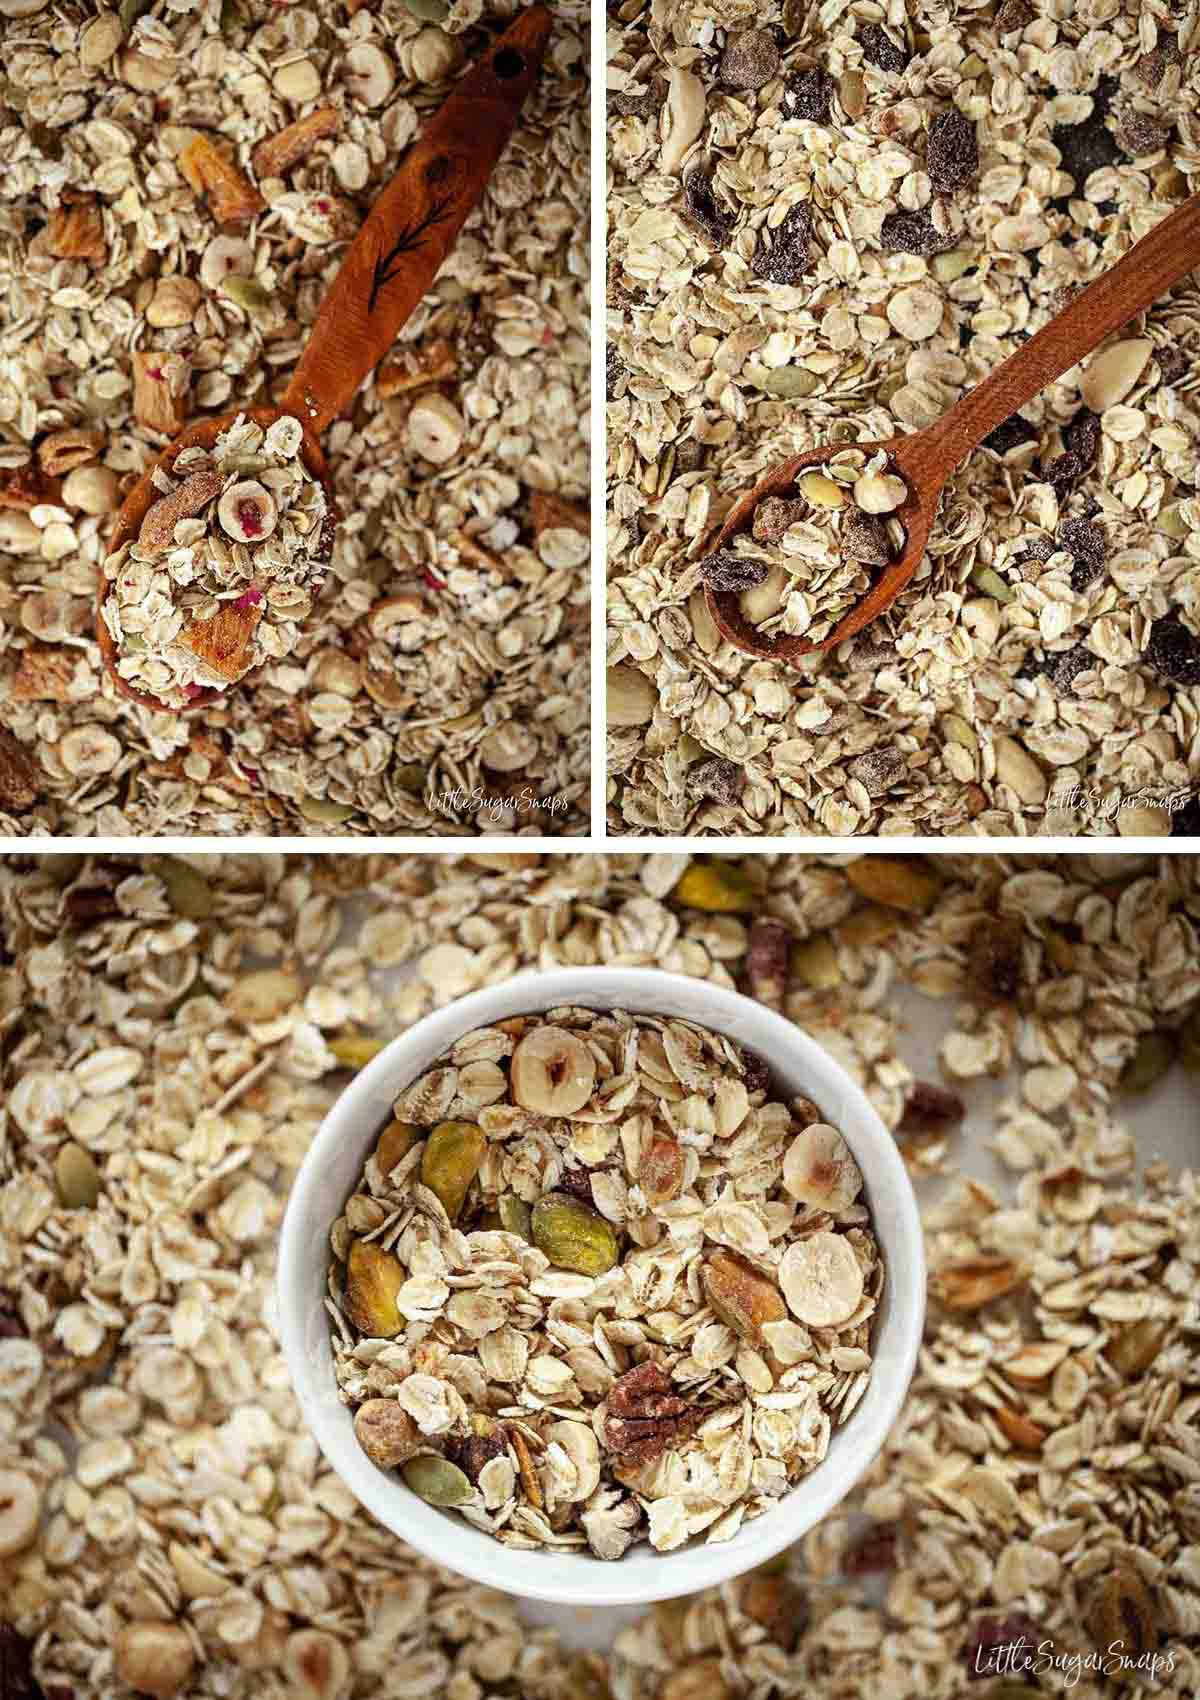 Collage showing three types of homemade muesli